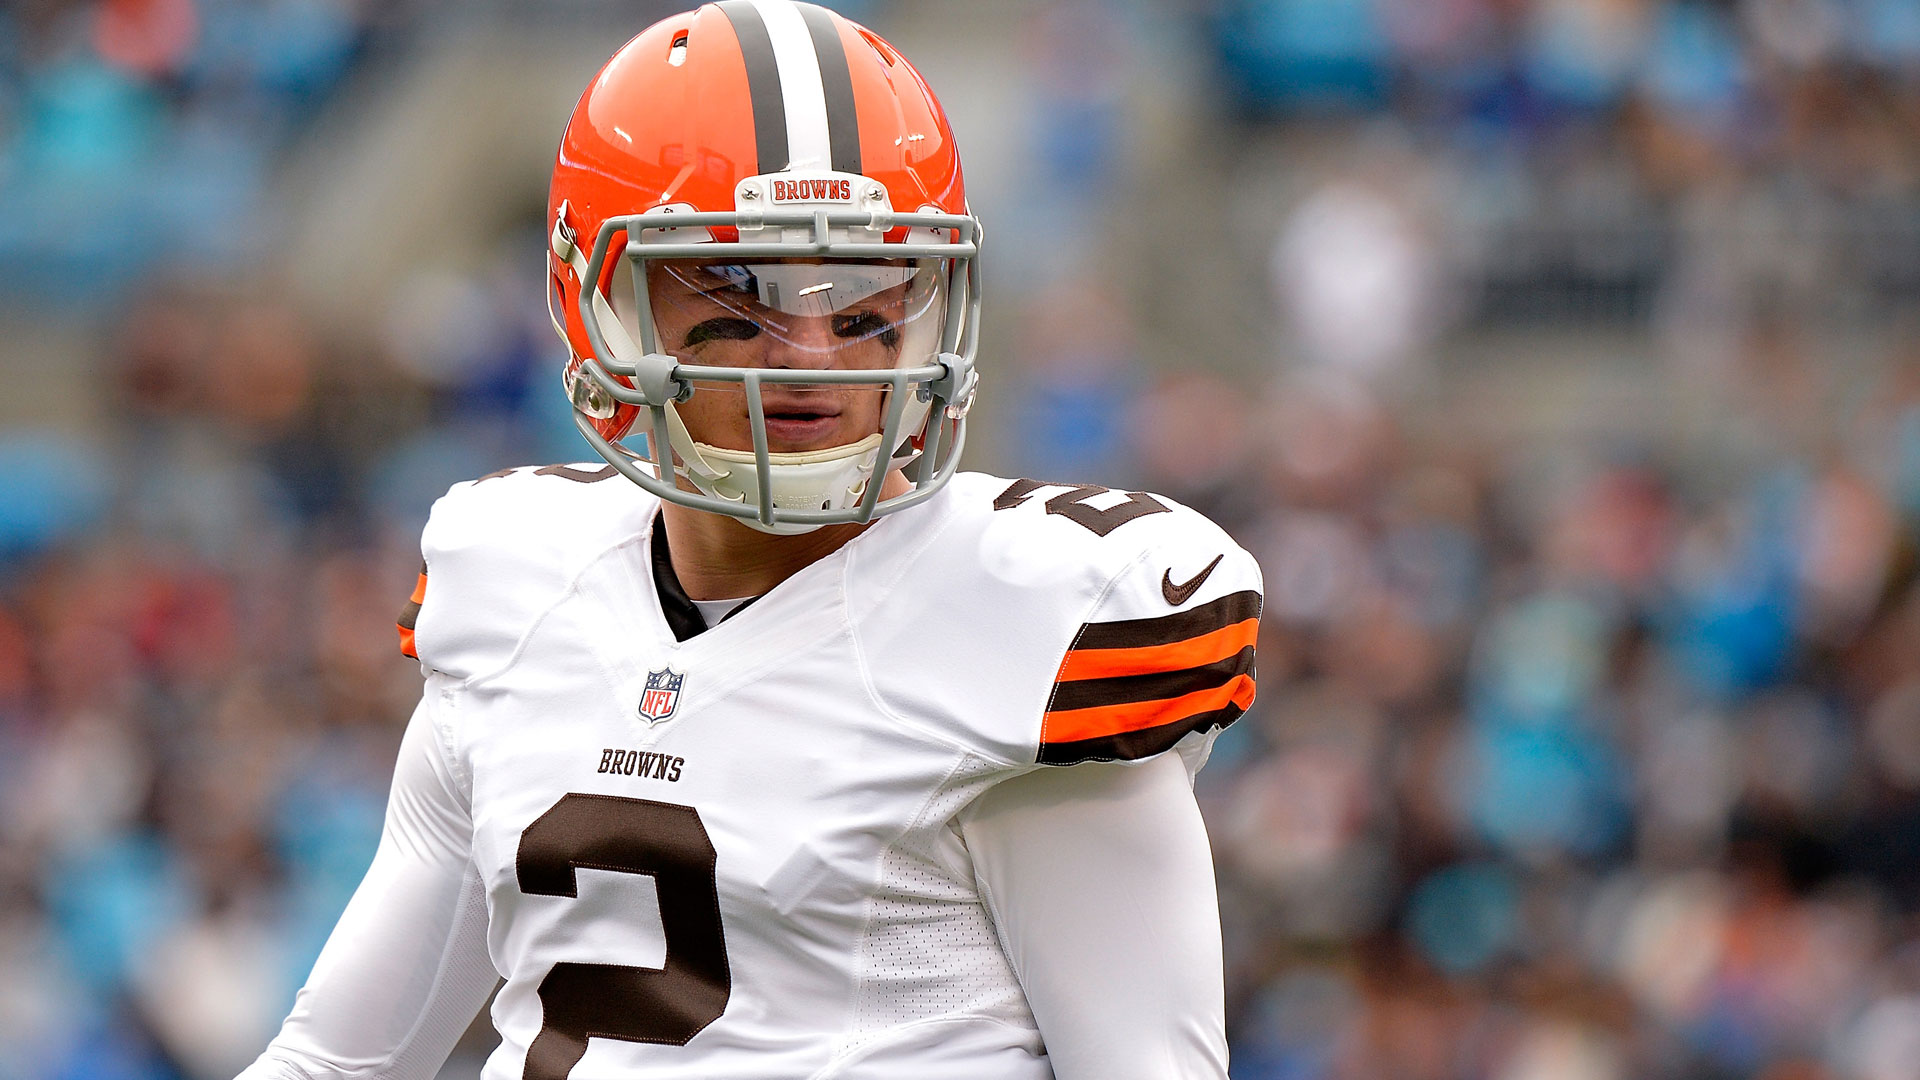 Without drafting a quarterback, Browns give Manziel silent endorsement